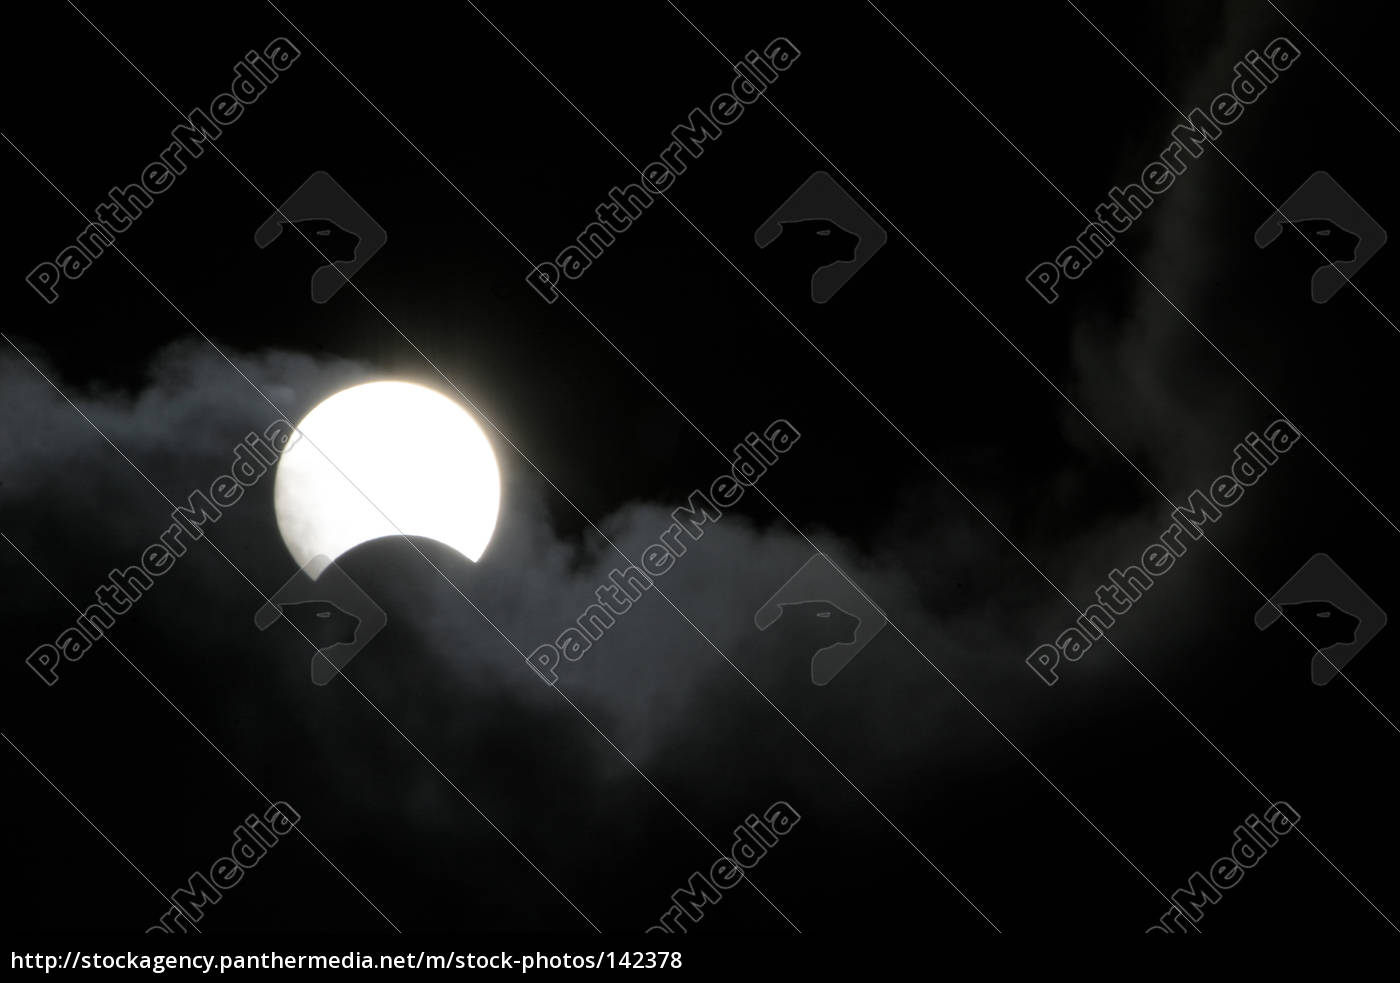 solar, eclipse - 142378